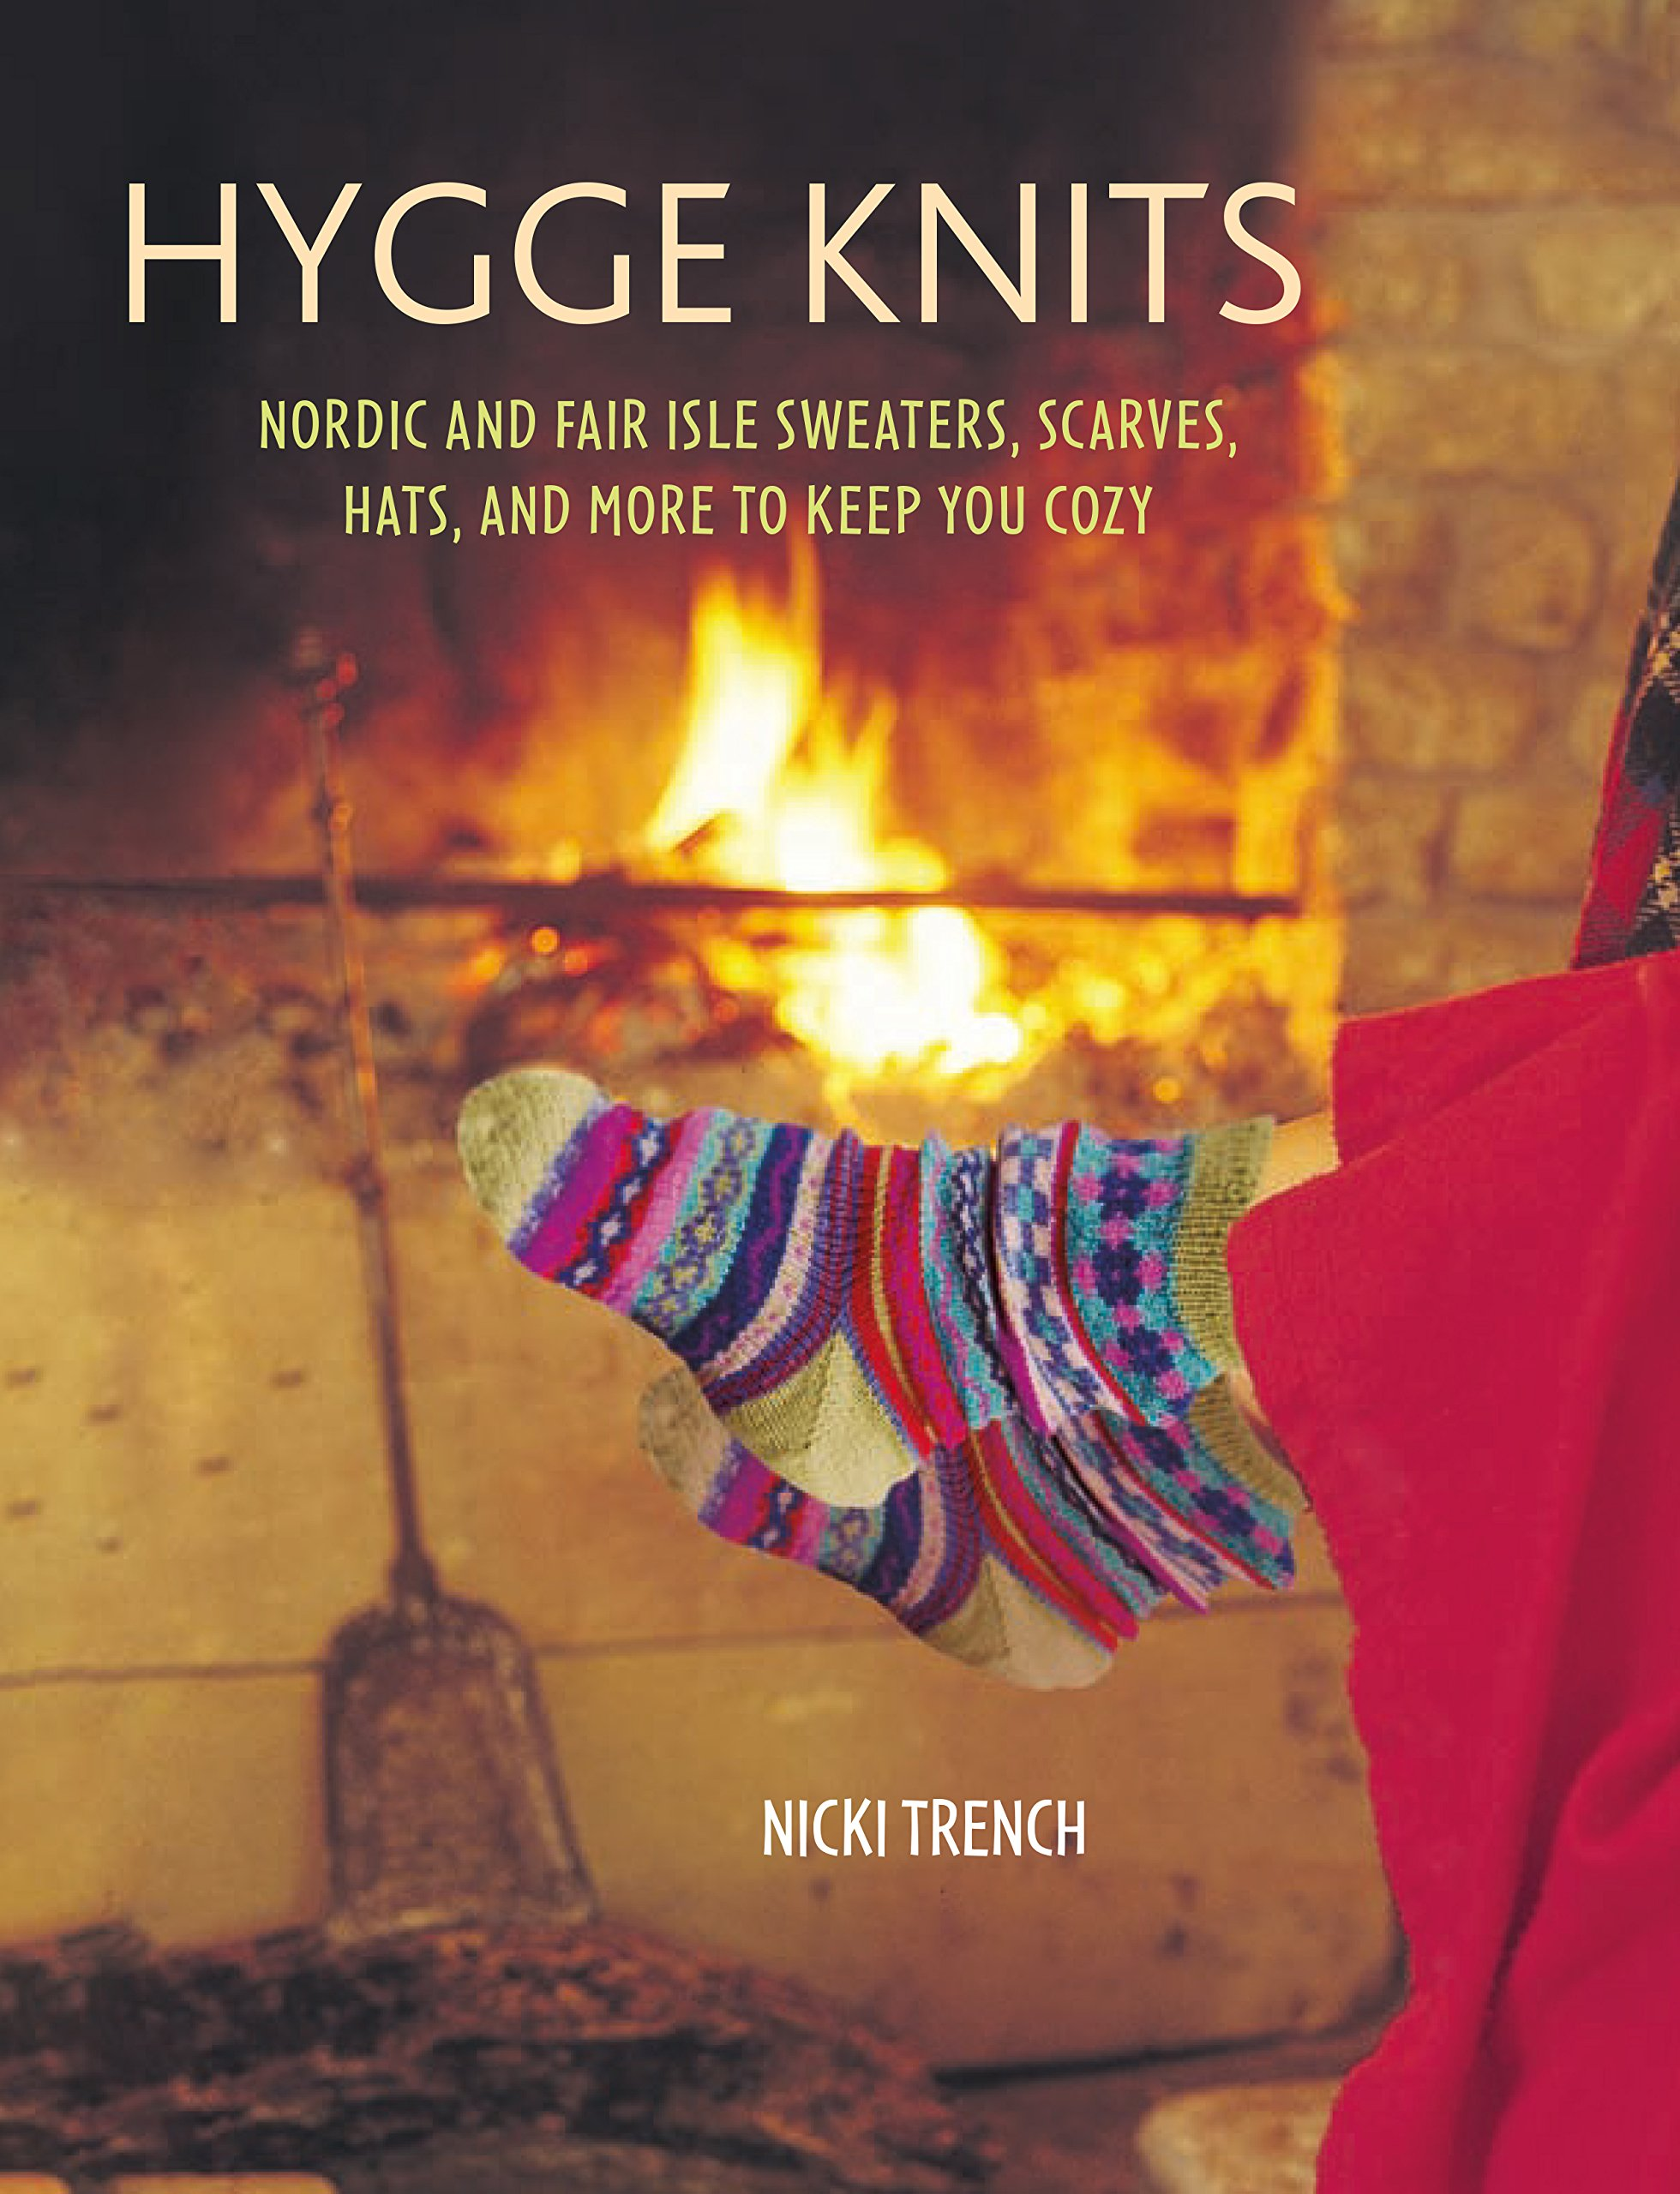 Hygge Knits: Nordic and Fair Isle sweaters, scarves, hats, and more to keep you cozy Paperback – 10 Jan 2017 Nicki Trench CICO Books 1782494782 Handicrafts